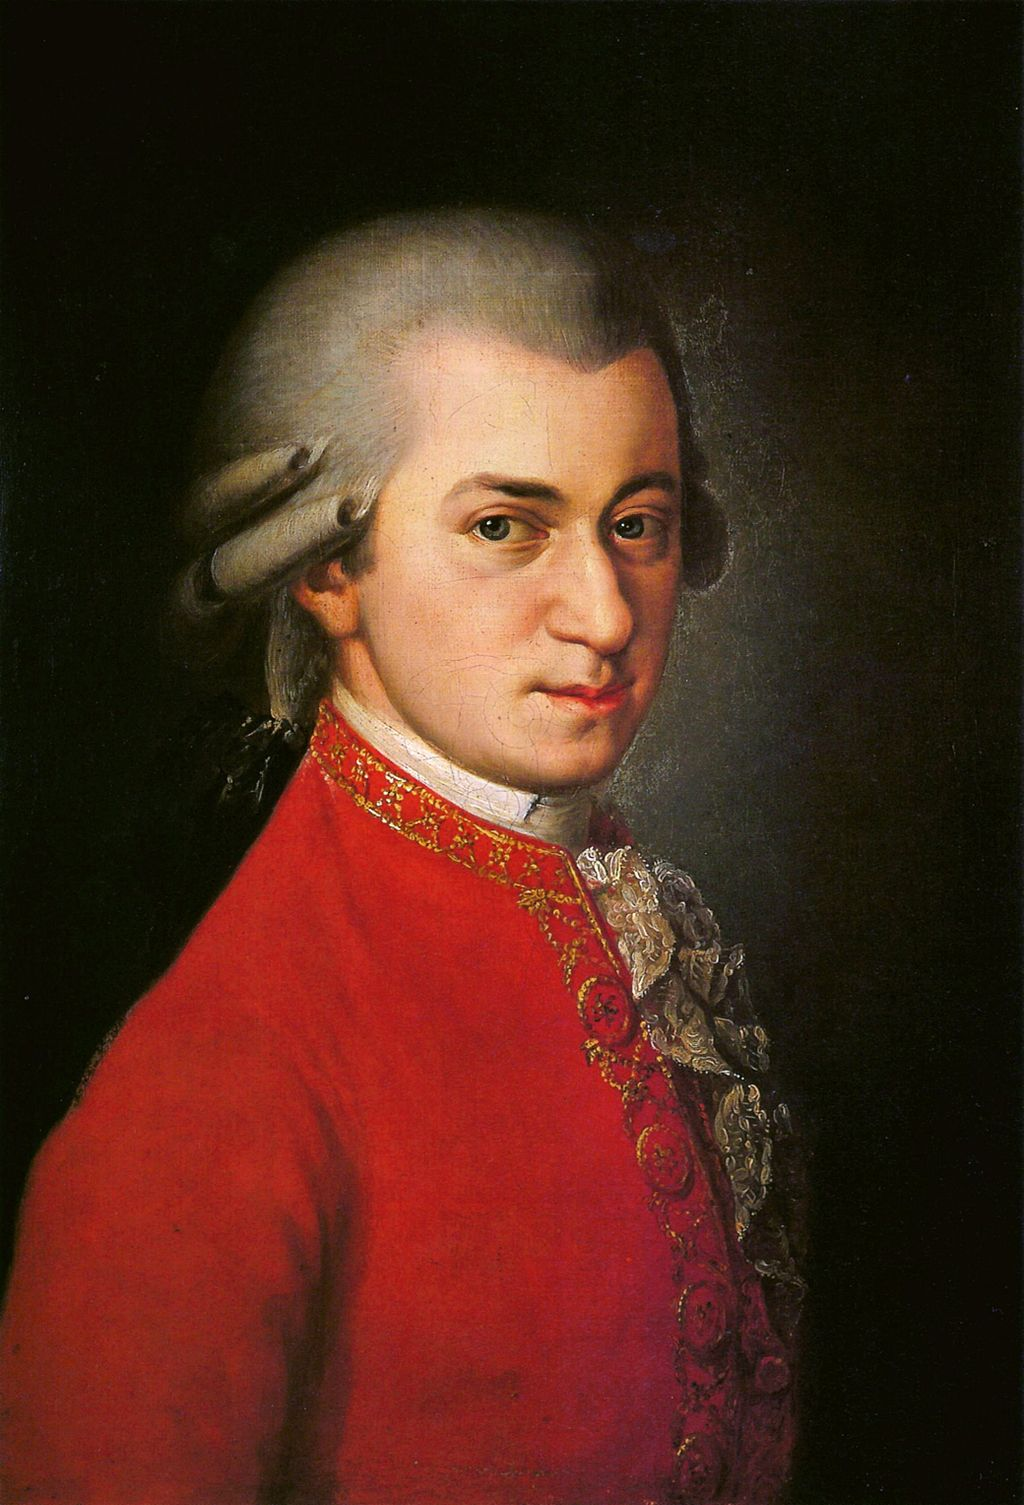 a look at the life of wolfgang amadeus mozart a musician Wolfgang mozart: a worksheet printout with questions and a picture to color   wolfgang amadeus mozart: composer j s bach quiz: baroque composer  musical biography j s bach: baroque composer  this is a thumbnail of the  wolfgang mozart worksheet page  search the enchanted learning website  for:.